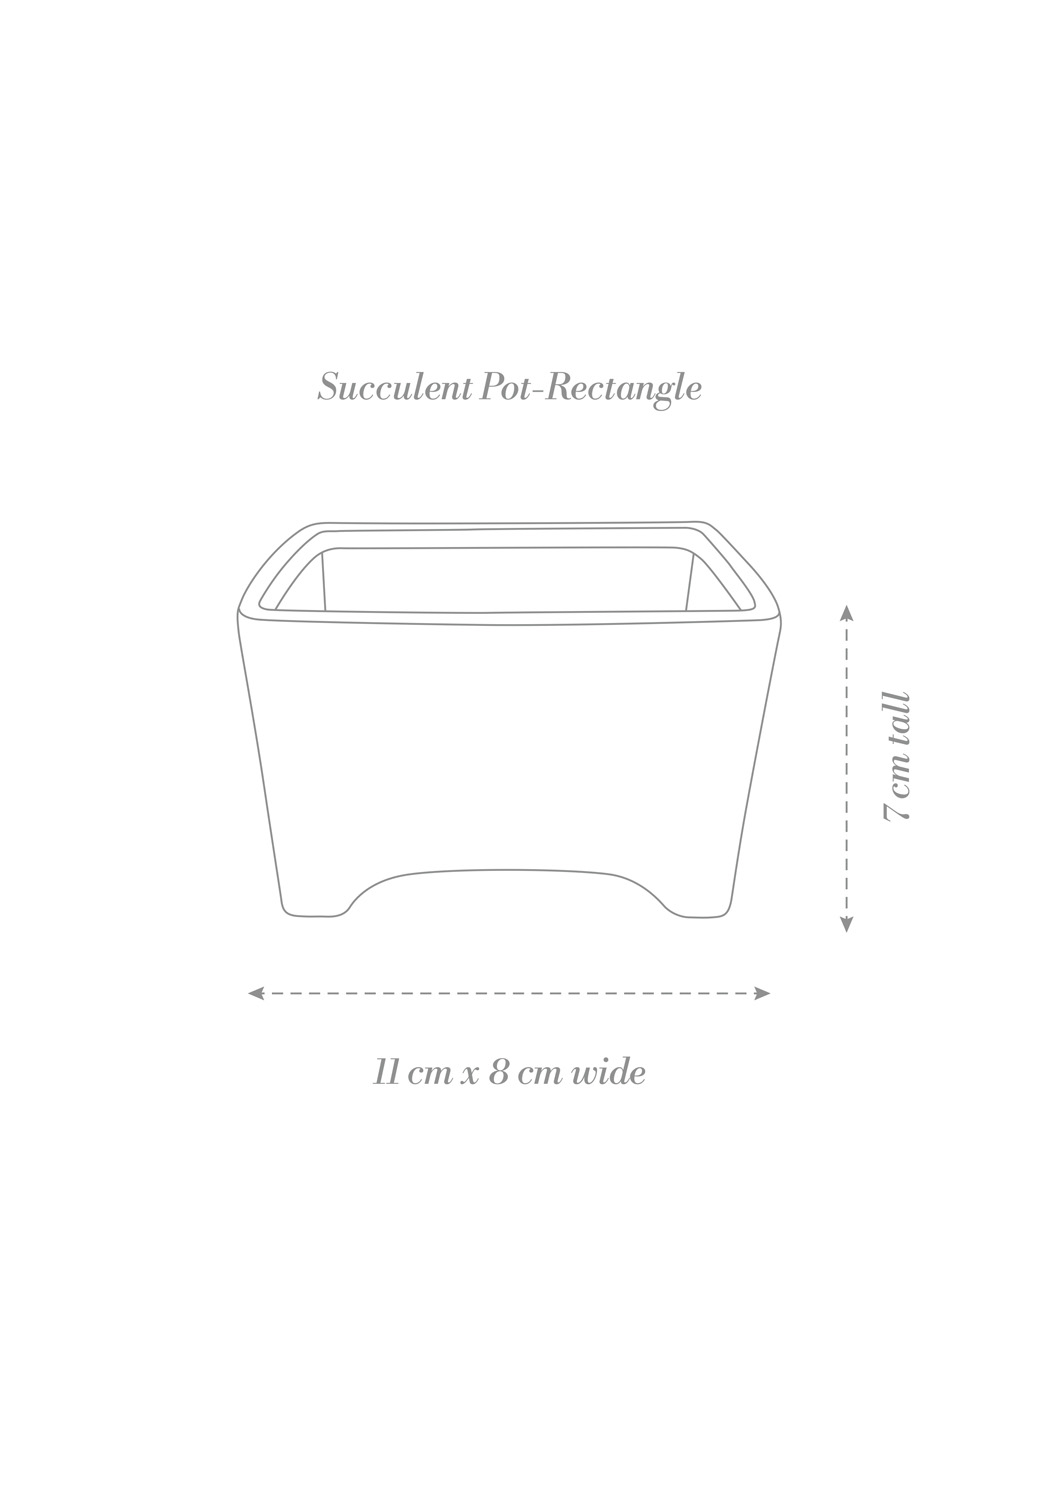 Succulent Pot Rectangle Product Diagram